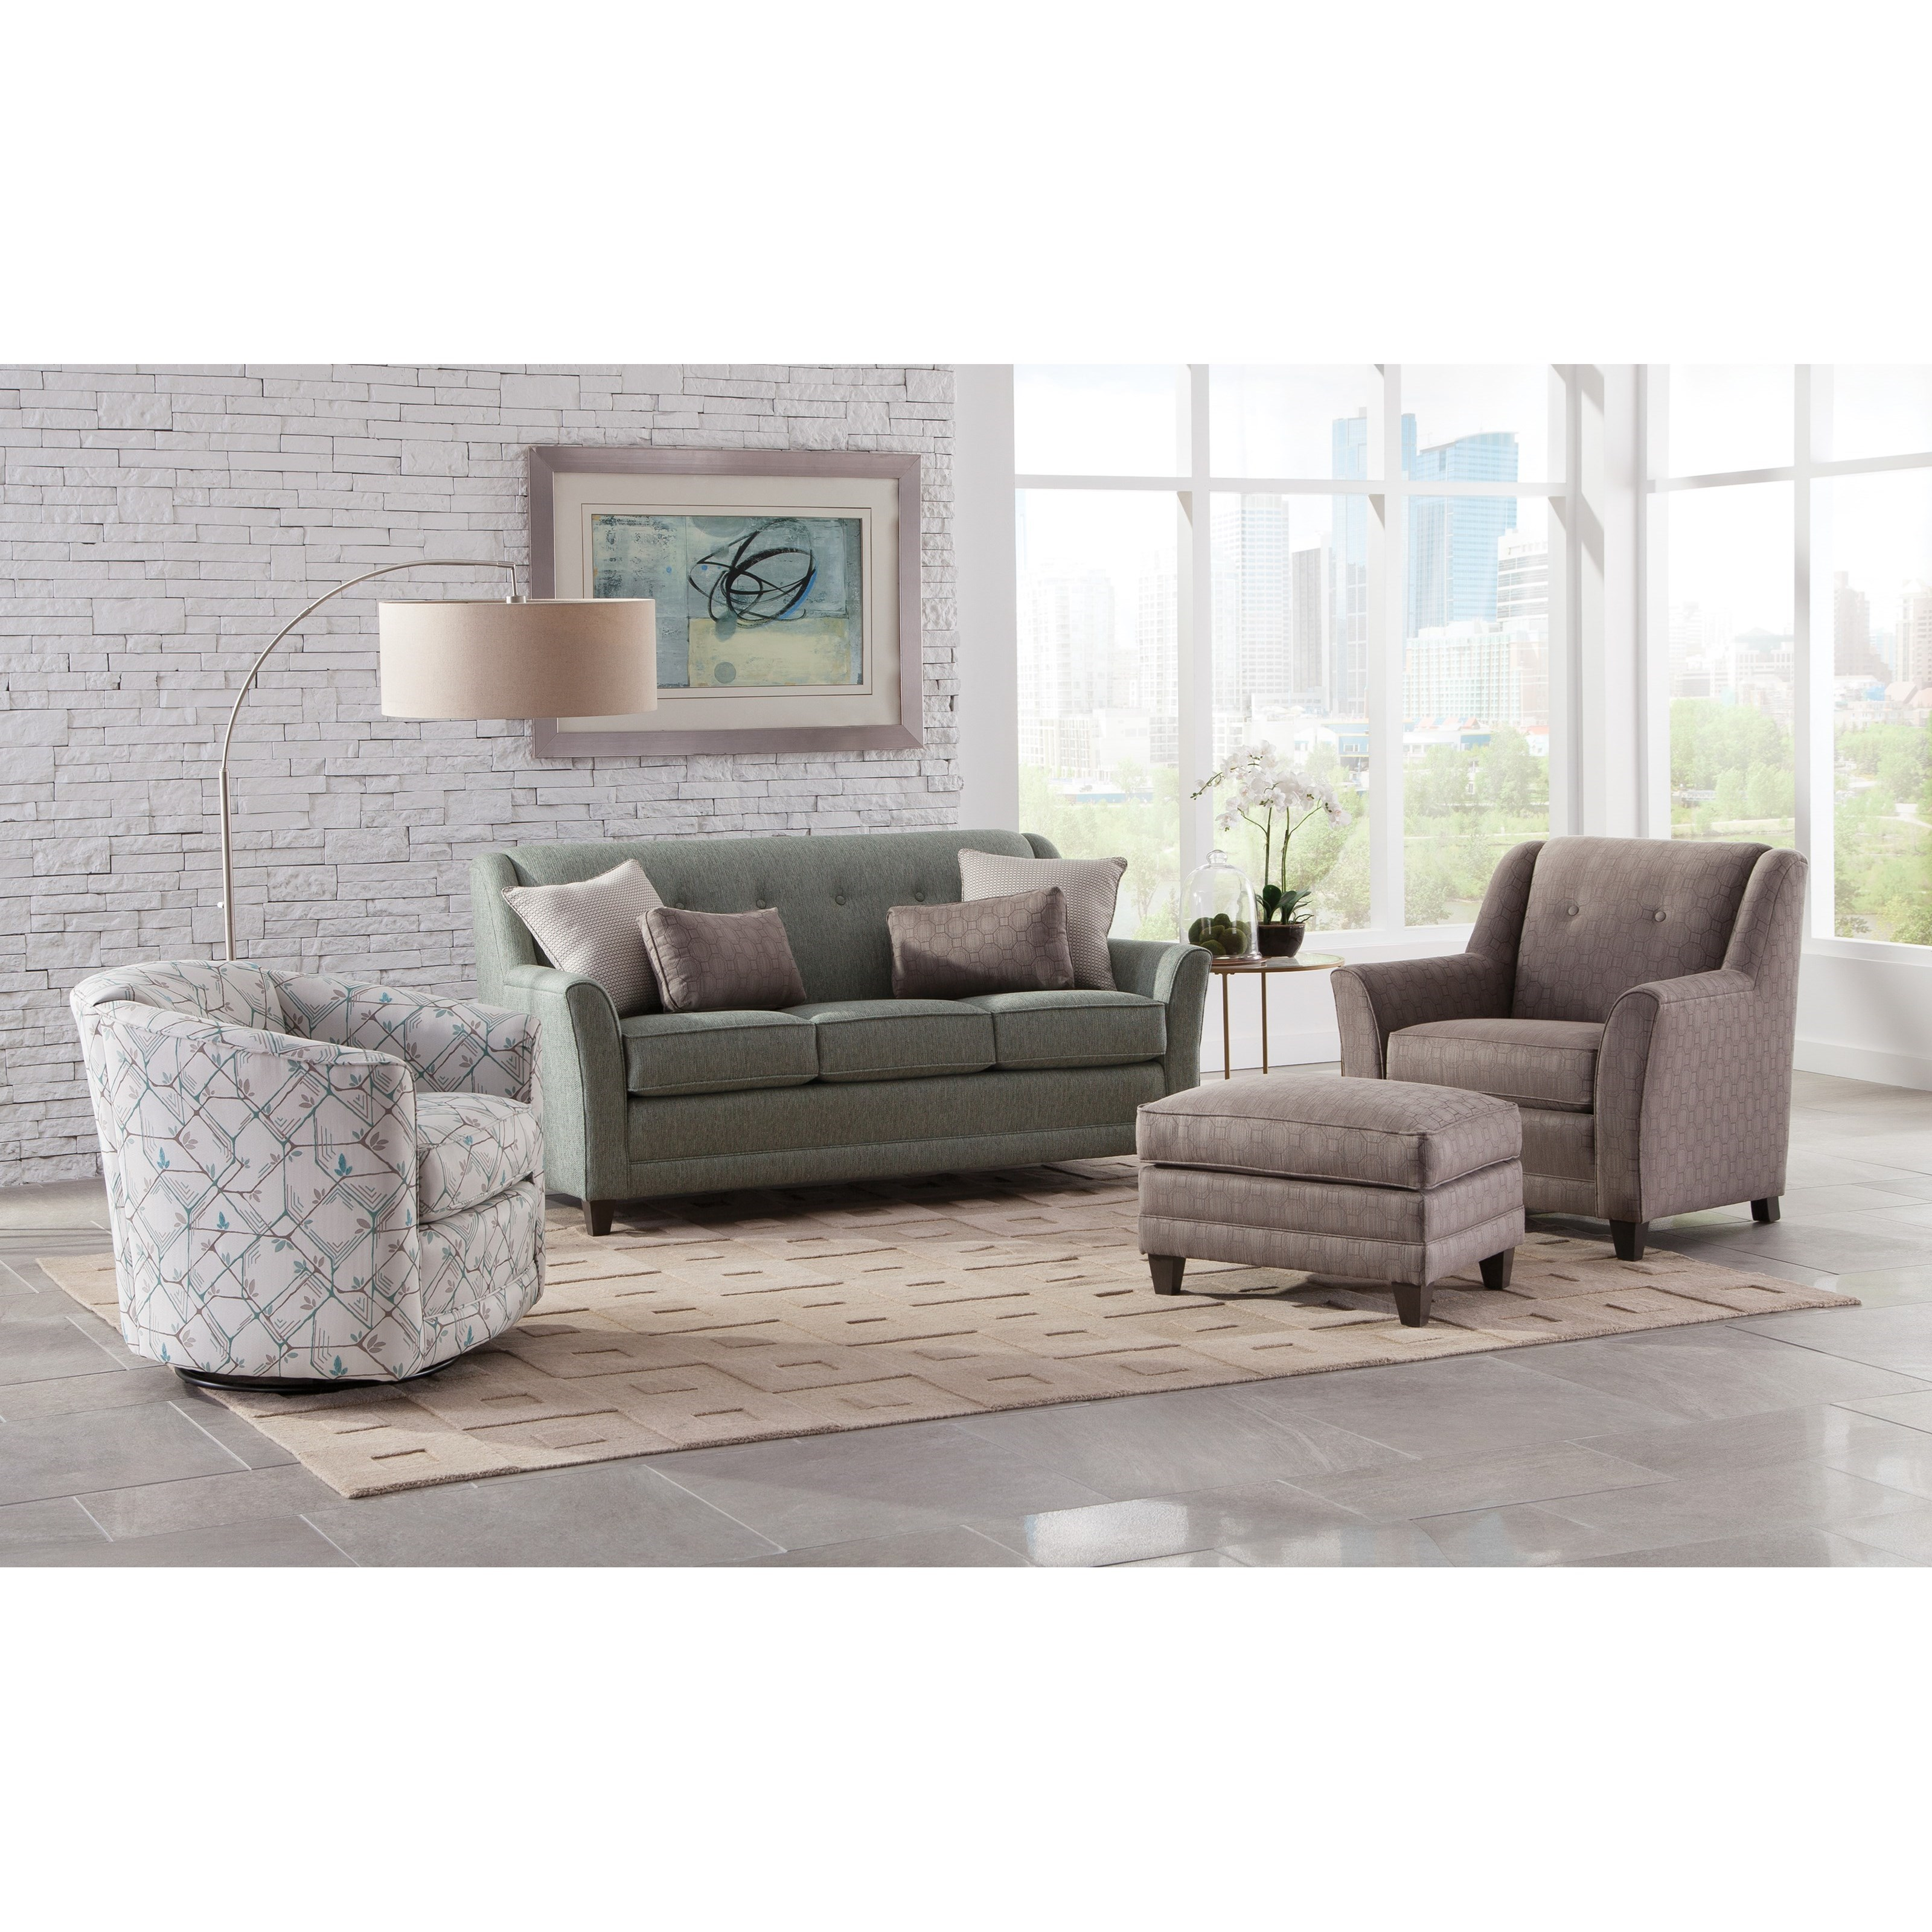 236 Stationary Living Room Group by Smith Brothers at Rooms for Less